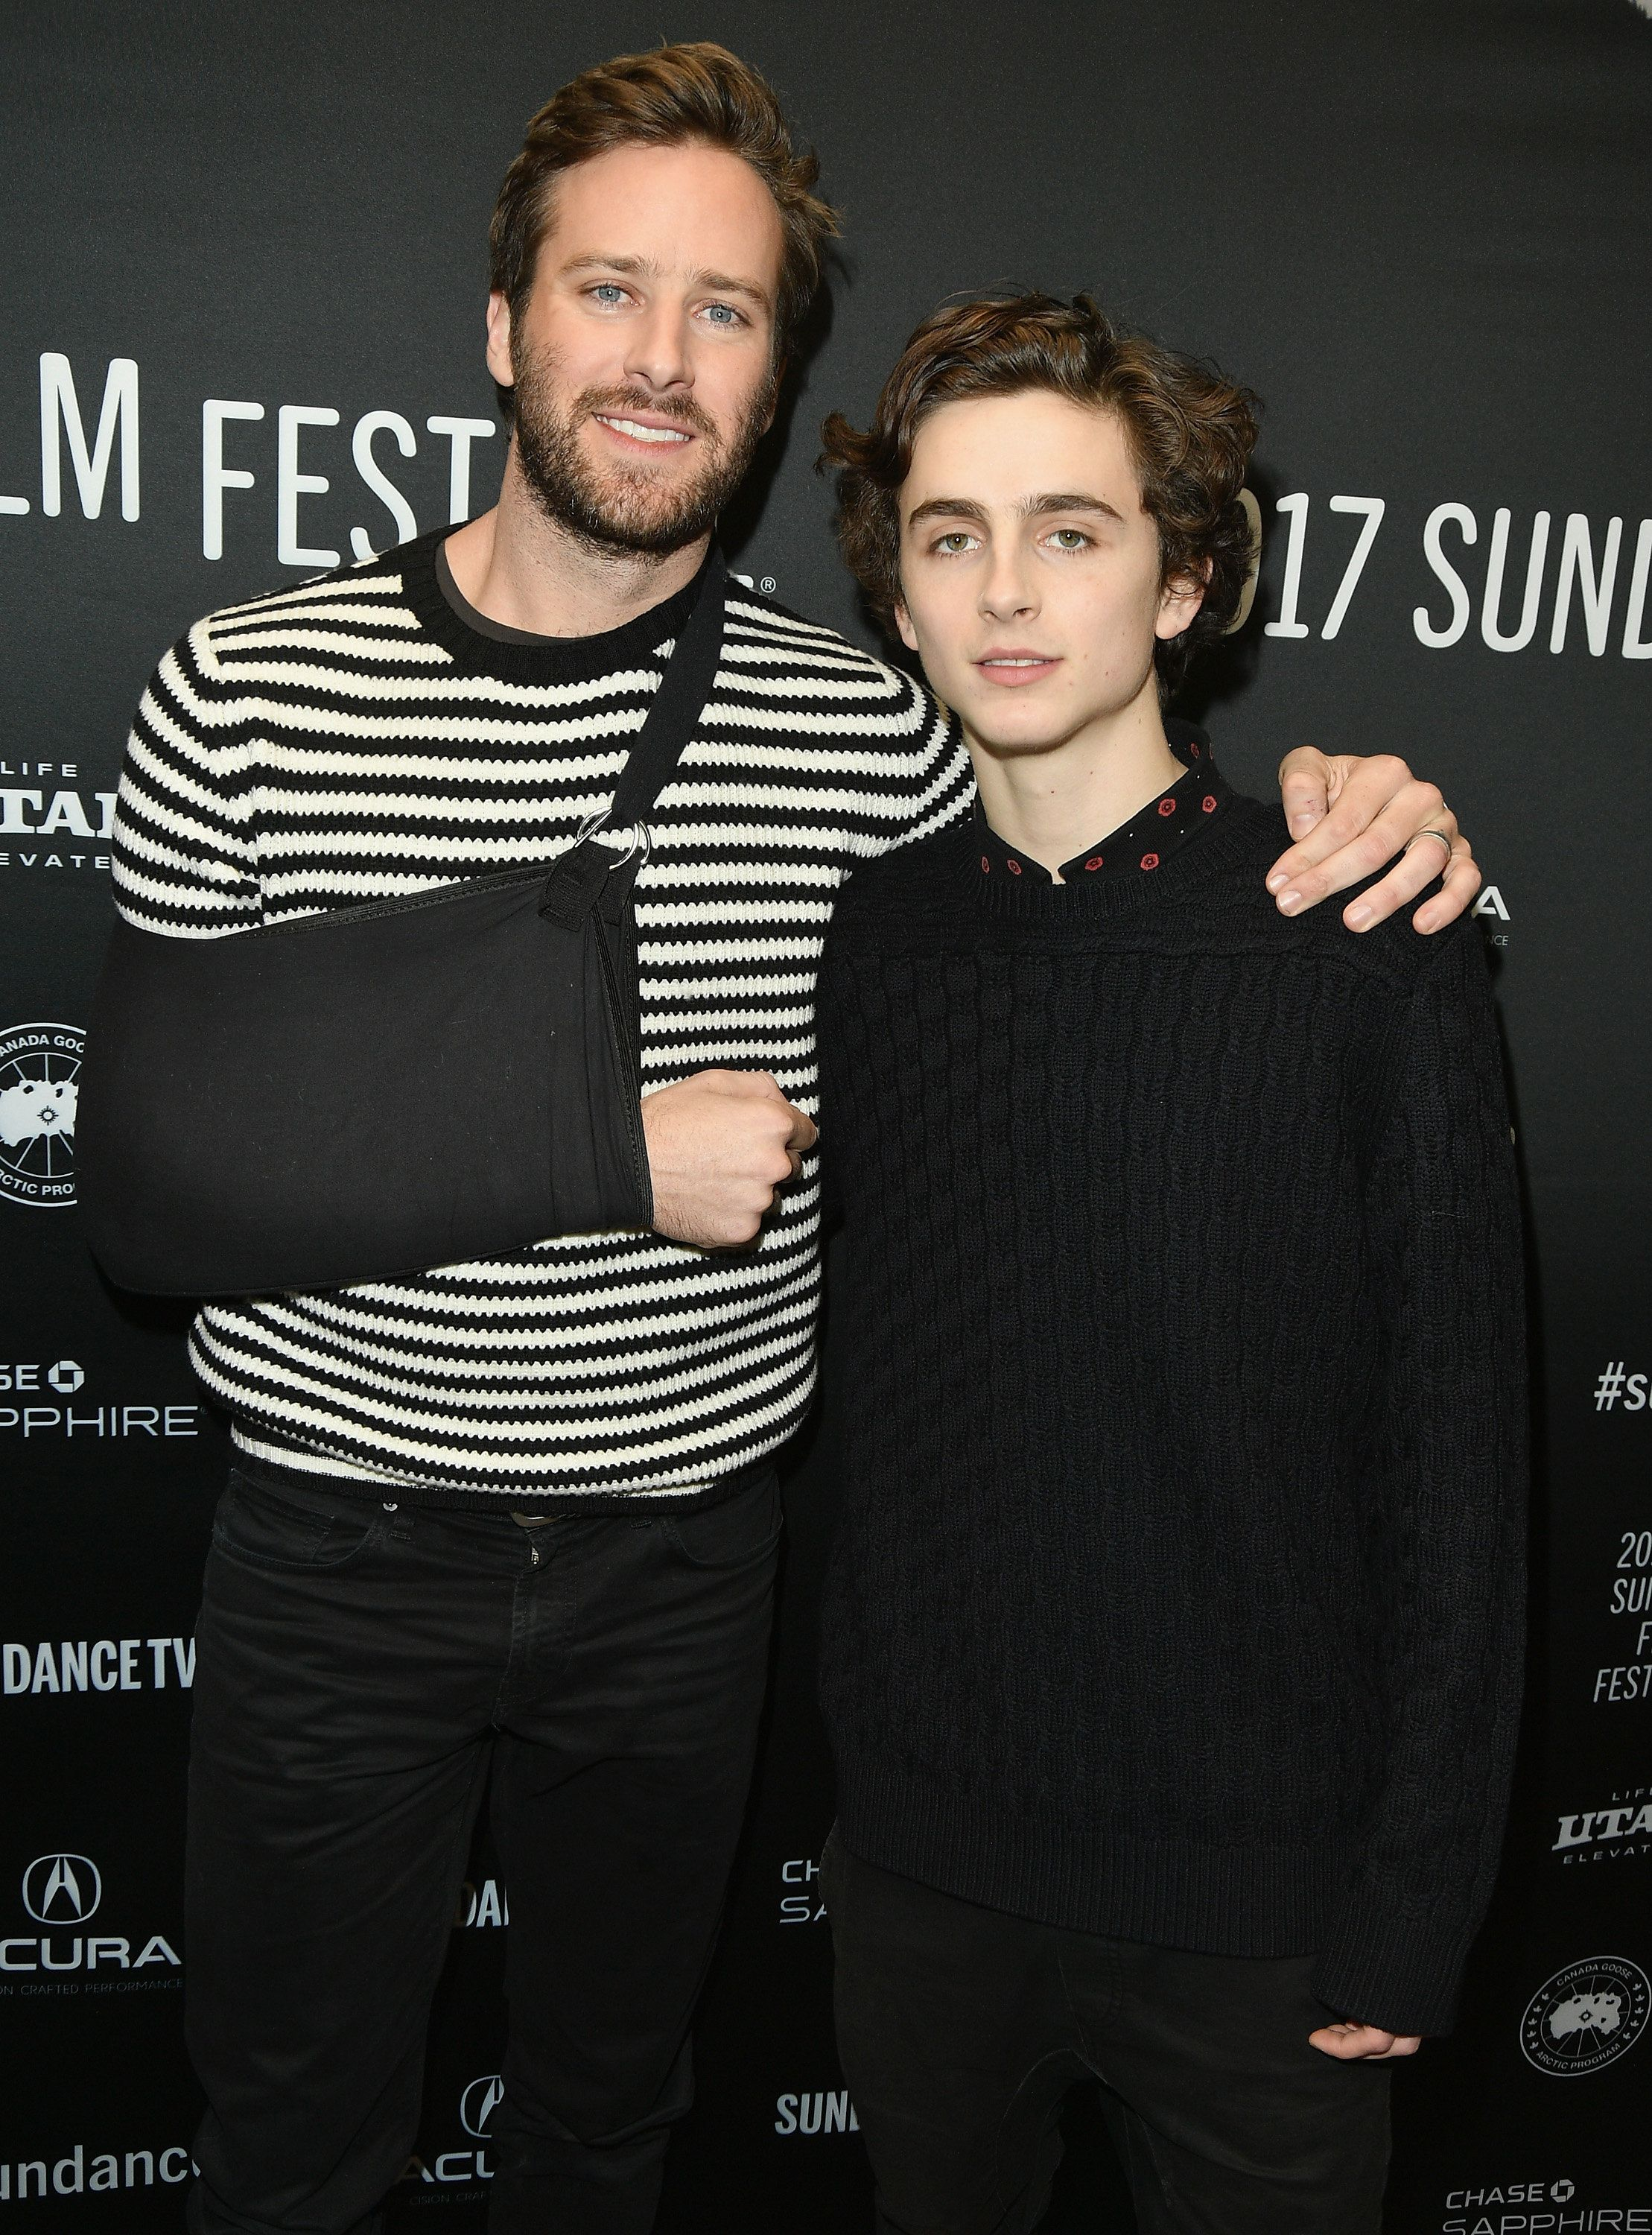 PARK CITY, UT - JANUARY 22:  Actor Armie Hammer and Timothee Chalamet attend the 'Call Me By Your Name' Premiere on day 4 of the 2017 Sundance Film Festival at Eccles Center Theatre on January 22, 2017 in Park City, Utah.  (Photo by George Pimentel/Getty Images for Sundance Film Festival)